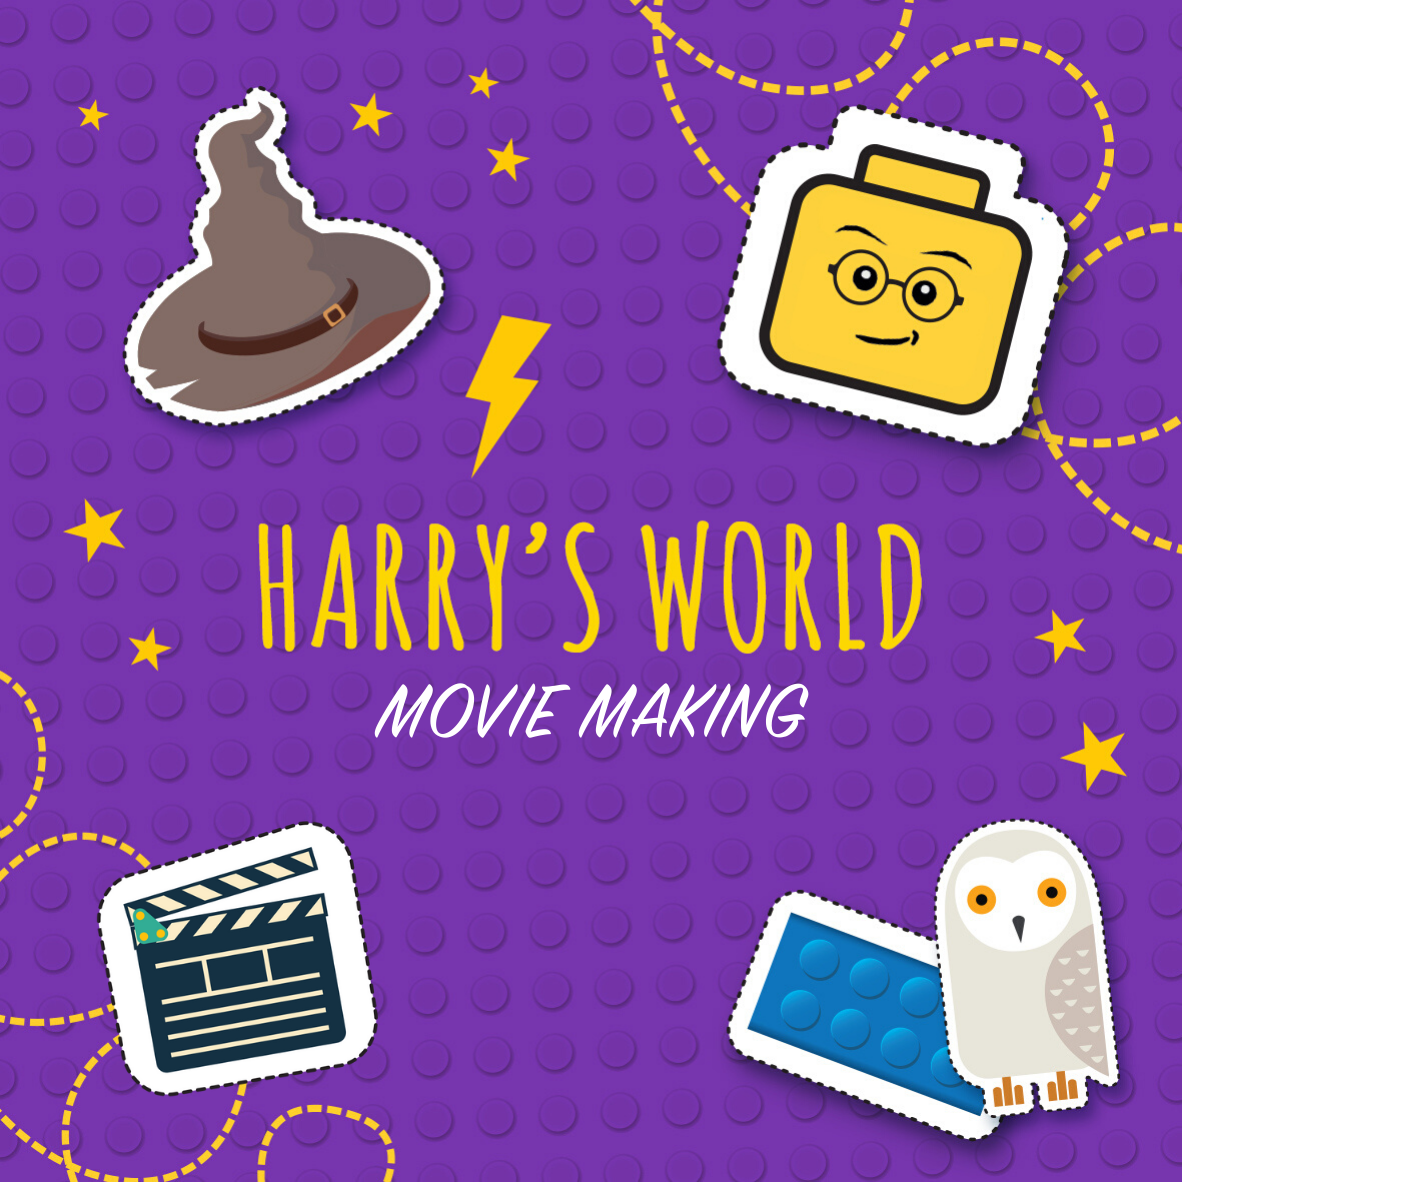 MOVIE MAKING - HARRY'S World